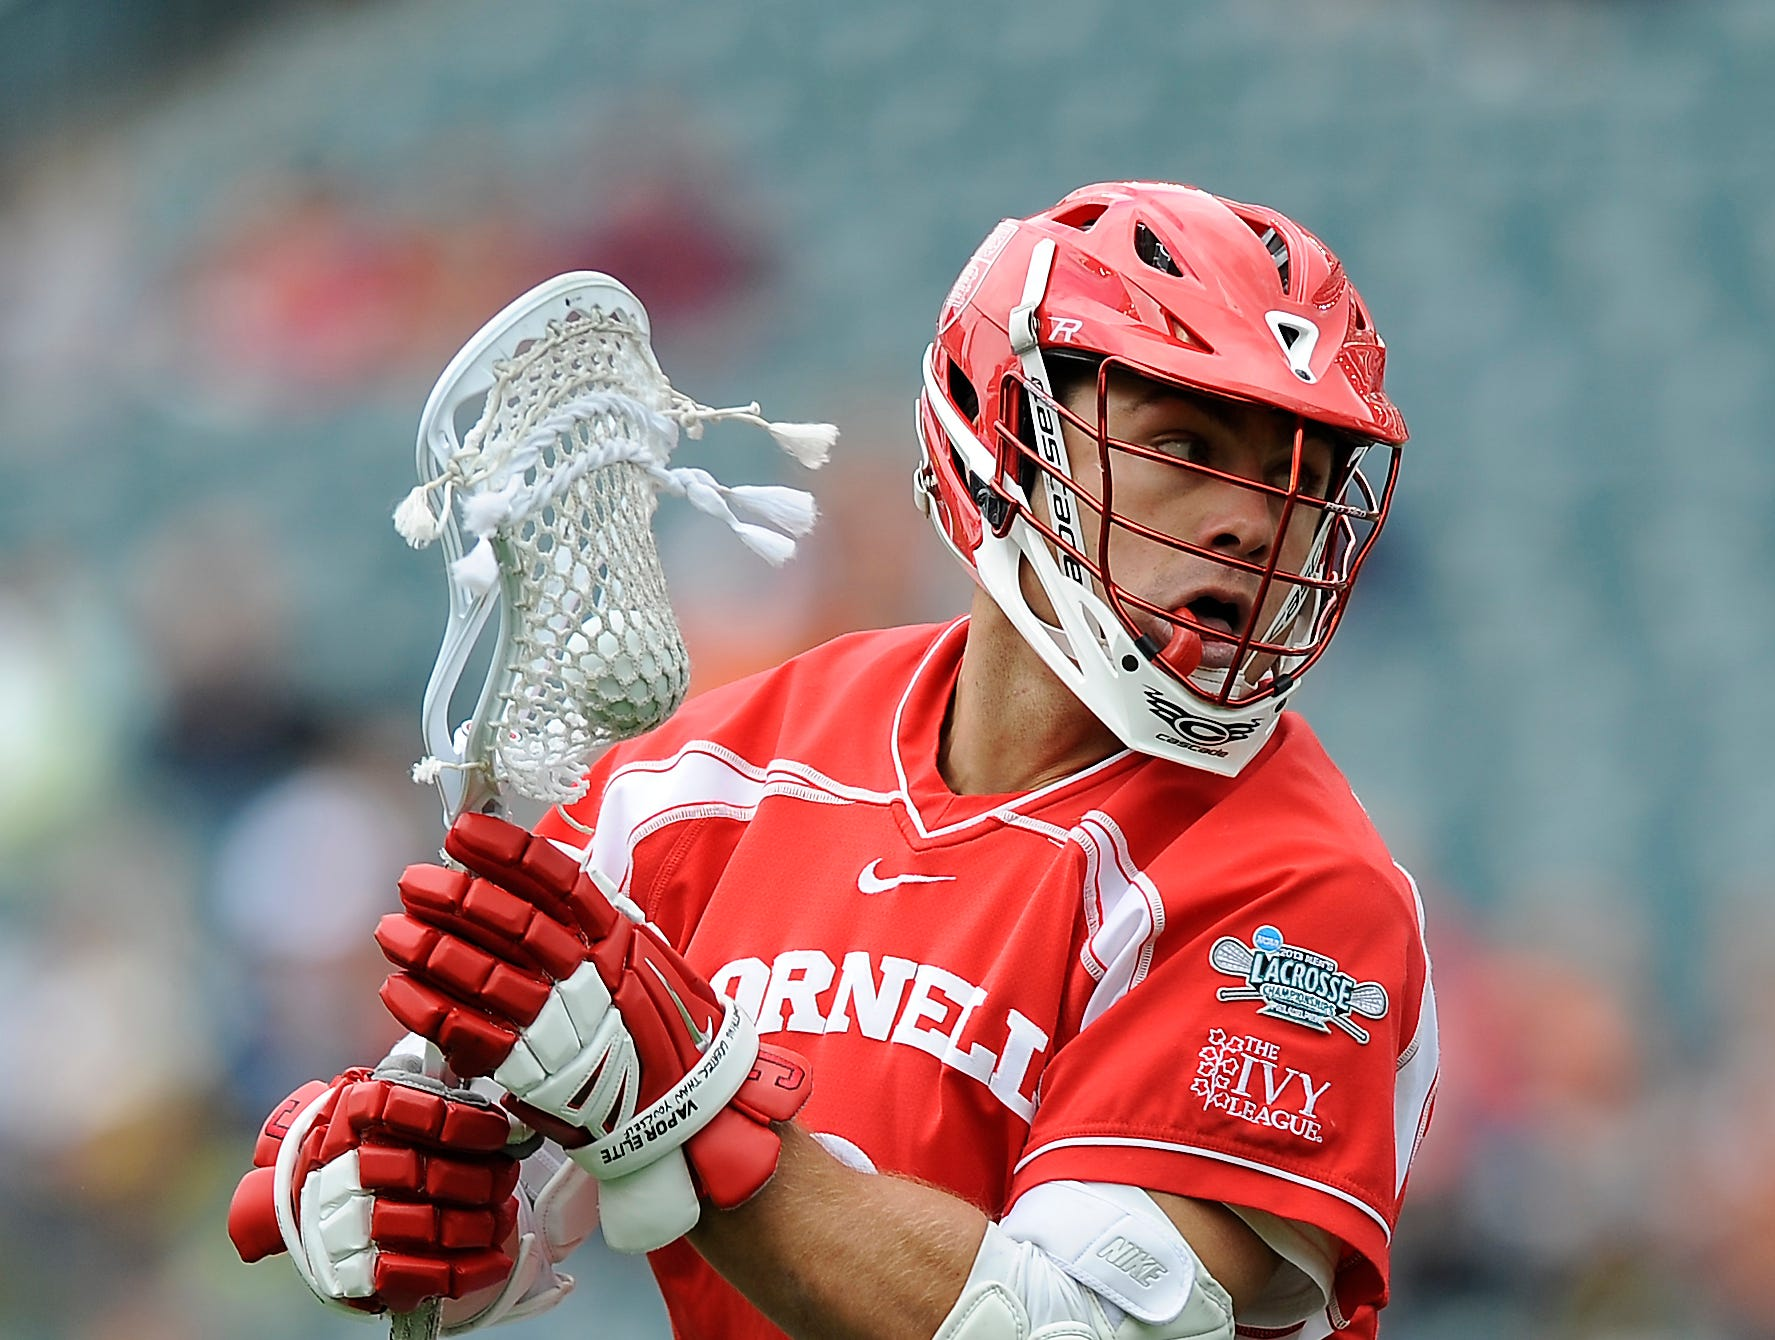 Cornell's Rob Pannell is shown in action during an NCAA division 1 semifinal lacrosse game on Saturday, May 25, 2013, in Philadelphia.